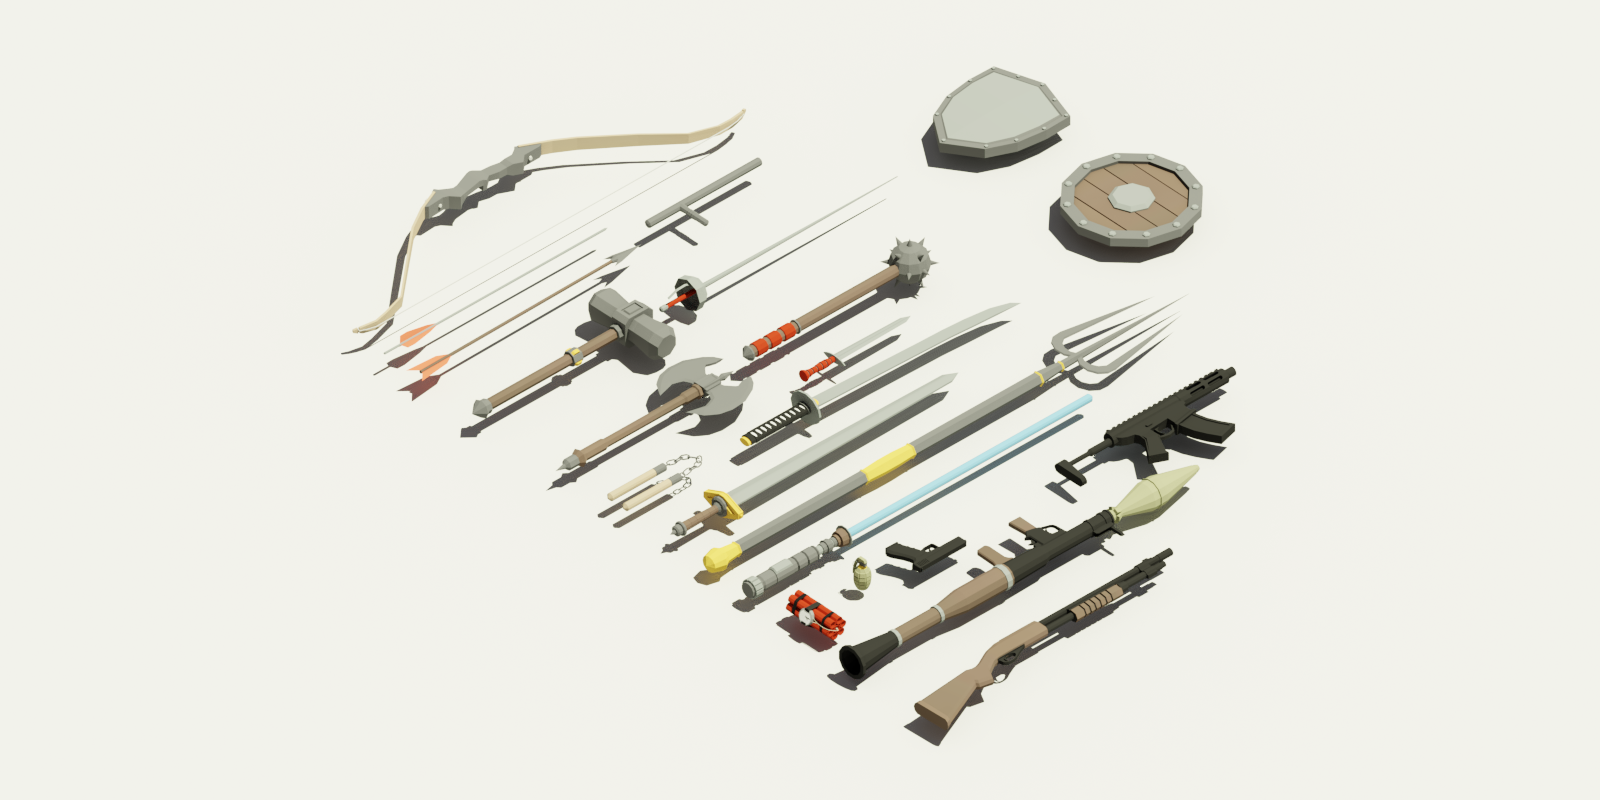 23 Free CC0 Weapons Lowpoly Models : gamedev